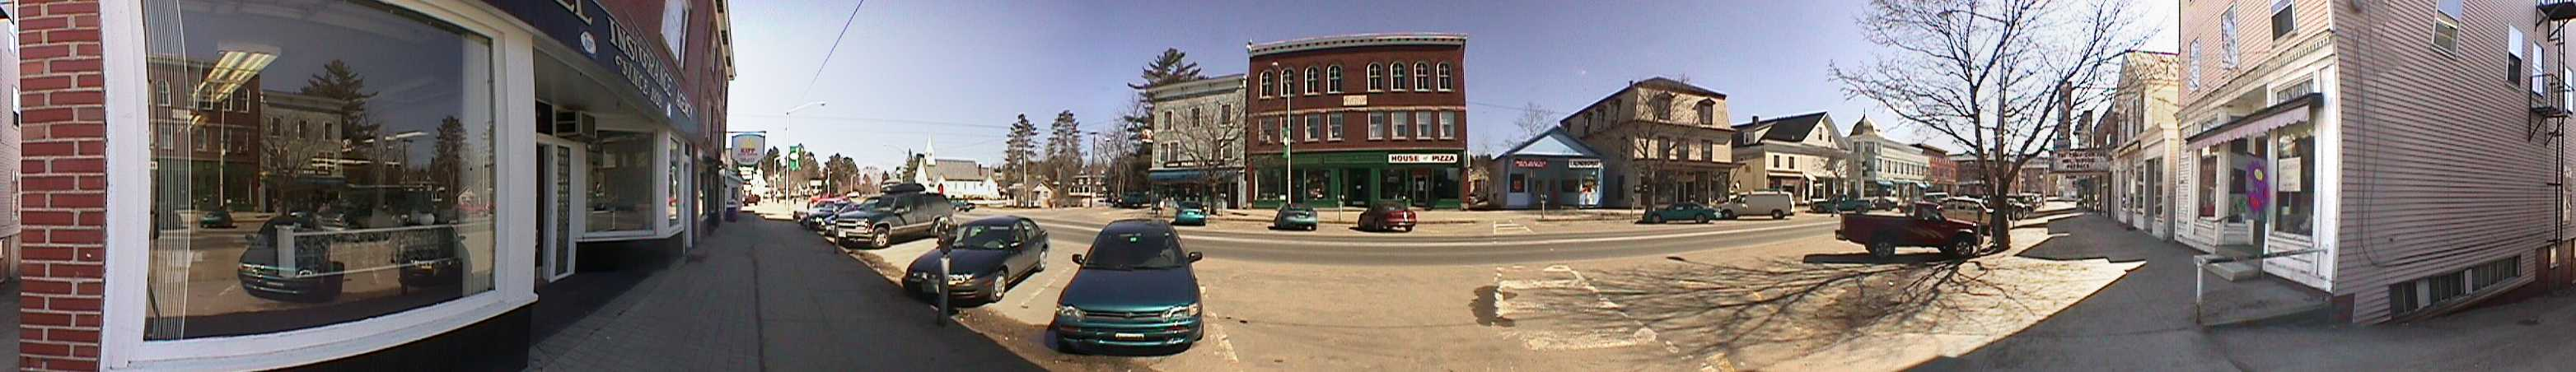 Panorama of Main Street, Lancaster, Program, Volunteers, Volunteer, NH, New Hampshire, Northern, Great North Woods, Coos County, Panorama of Main Street, Lancaster, Program, Volunteers, Volunteer, NH, New Hampshire, Northern, Great North Woods, Coos Count